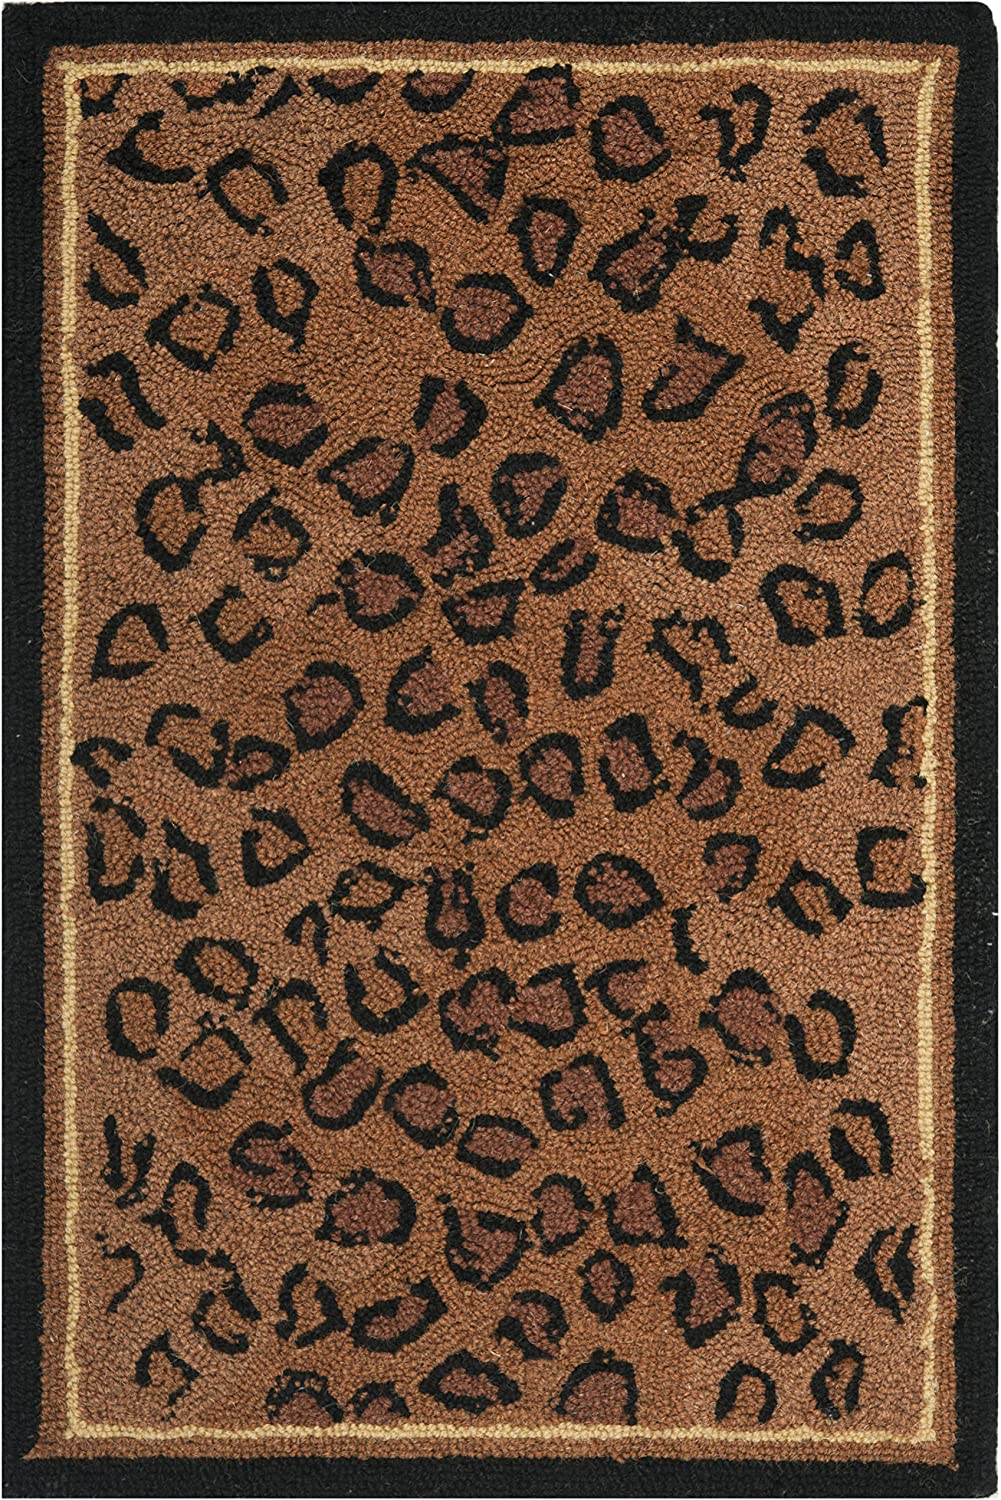 "Safavieh Chelsea Collection HK15A Hand-Hooked Black and Brown Premium Wool Area Rug (1'8"" x 2'6"")"